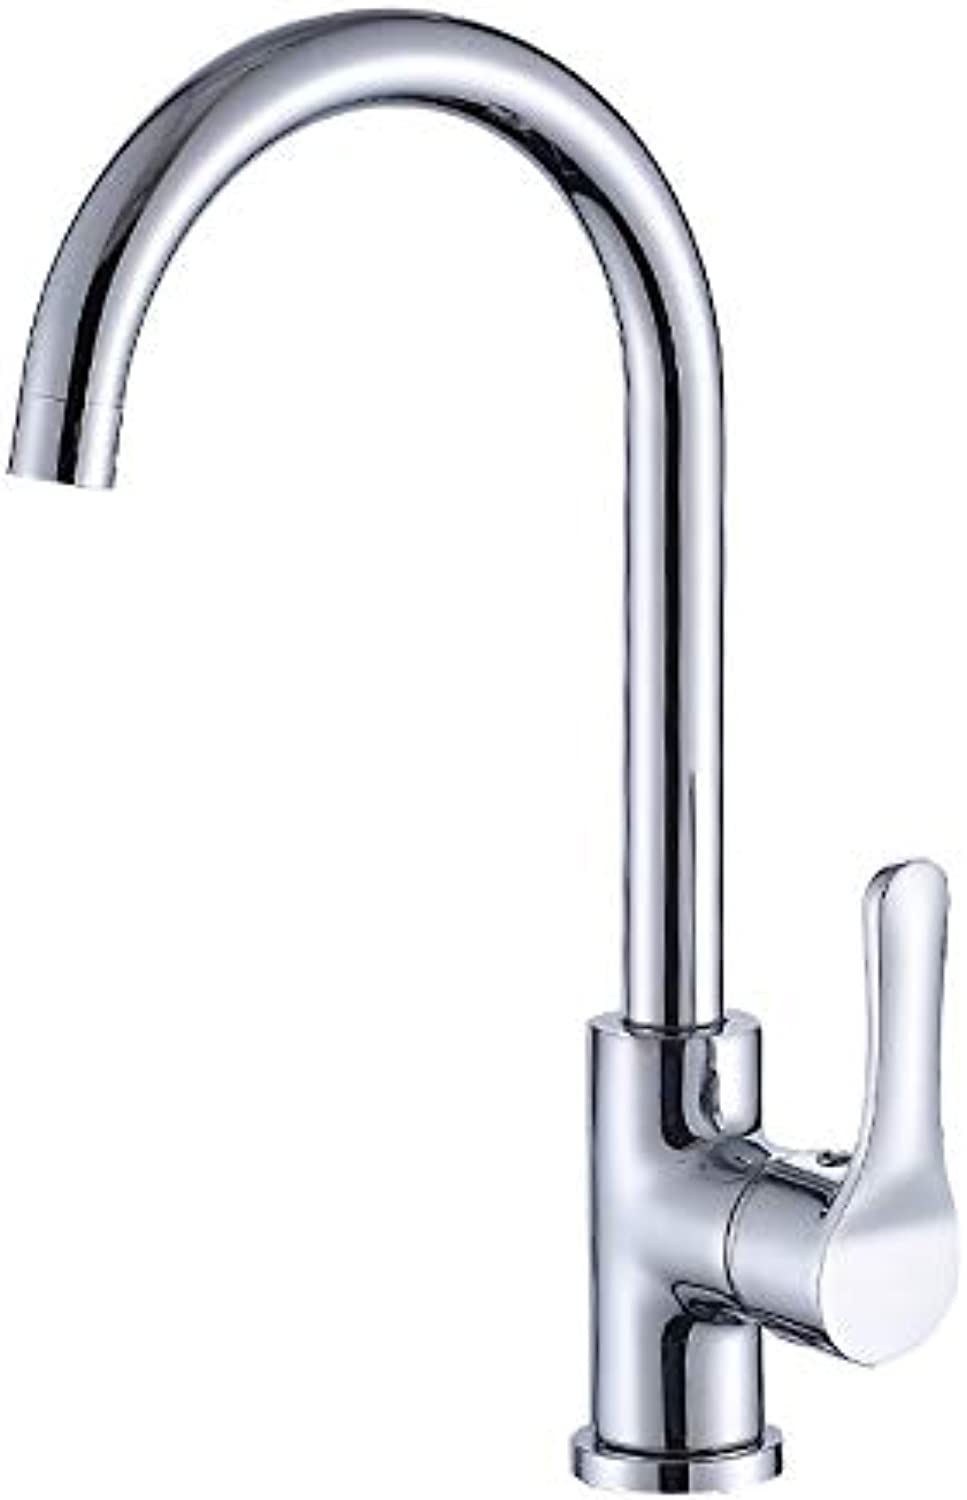 Bathroom Sink Basin Lever Mixer Tap Kitchen Faucet Kitchen Faucet Washing Basin Cold and Hot Water Faucet redating Sink Faucet Copper Faucet